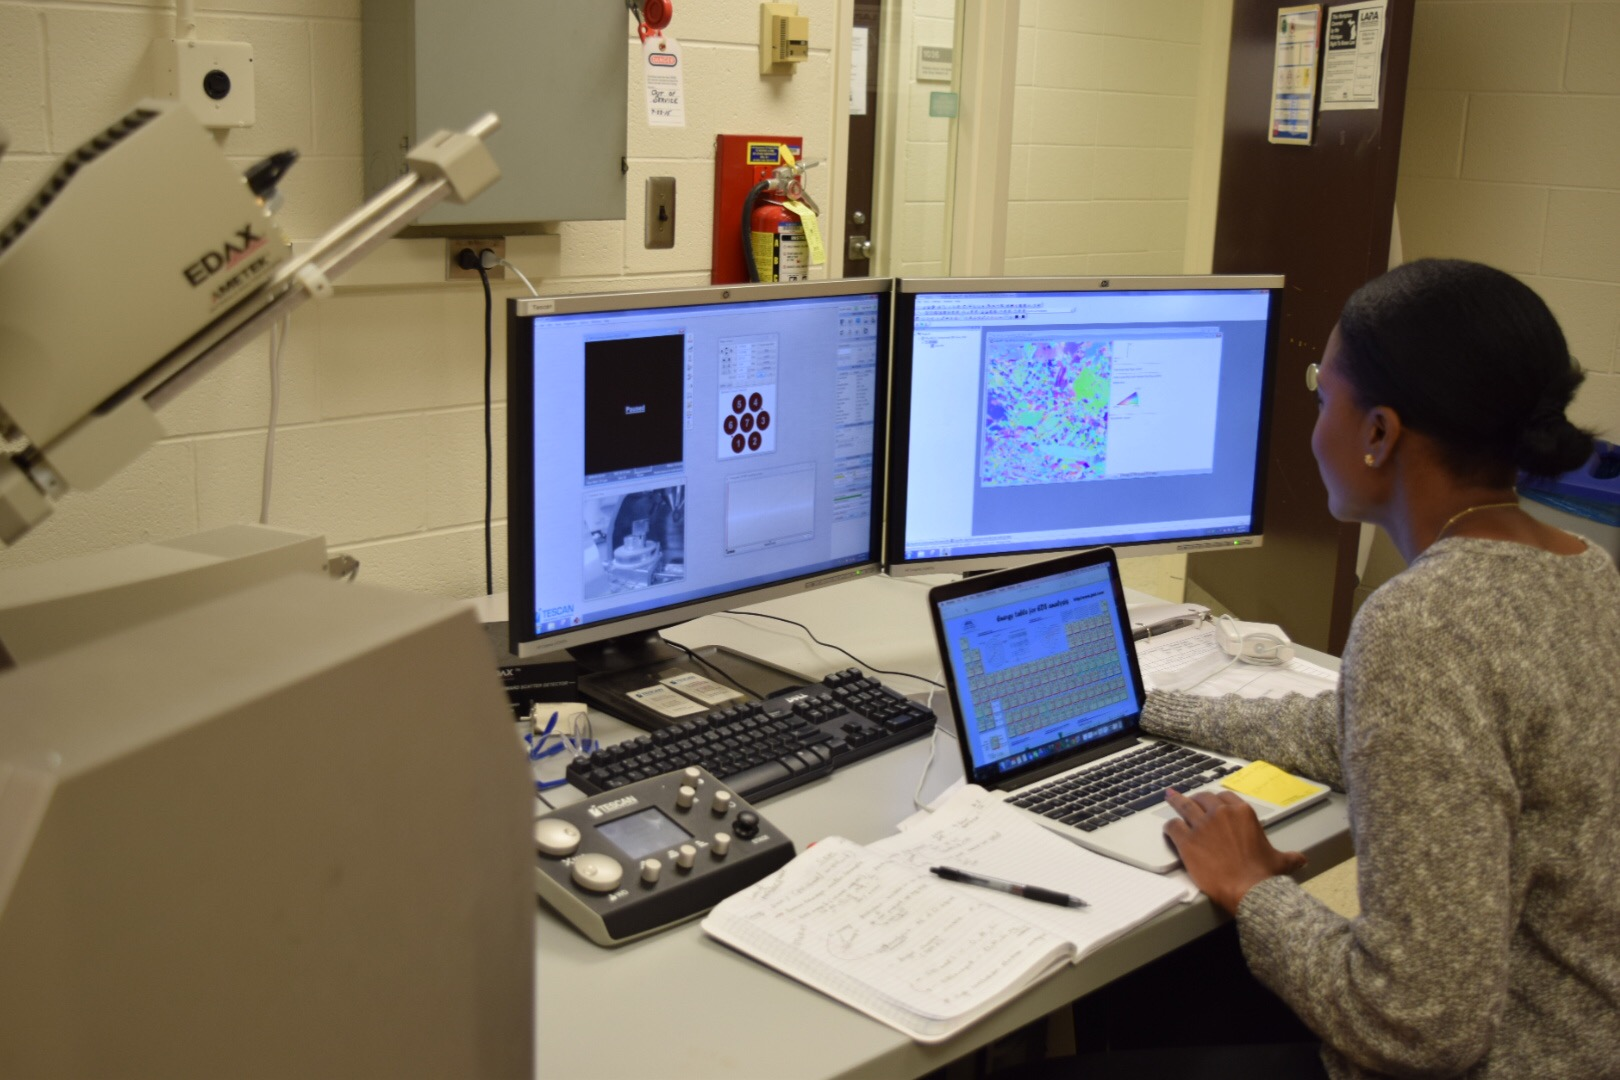 Characterizing samples in a scanning electron microscope using a technique called electron back scatter diffraction